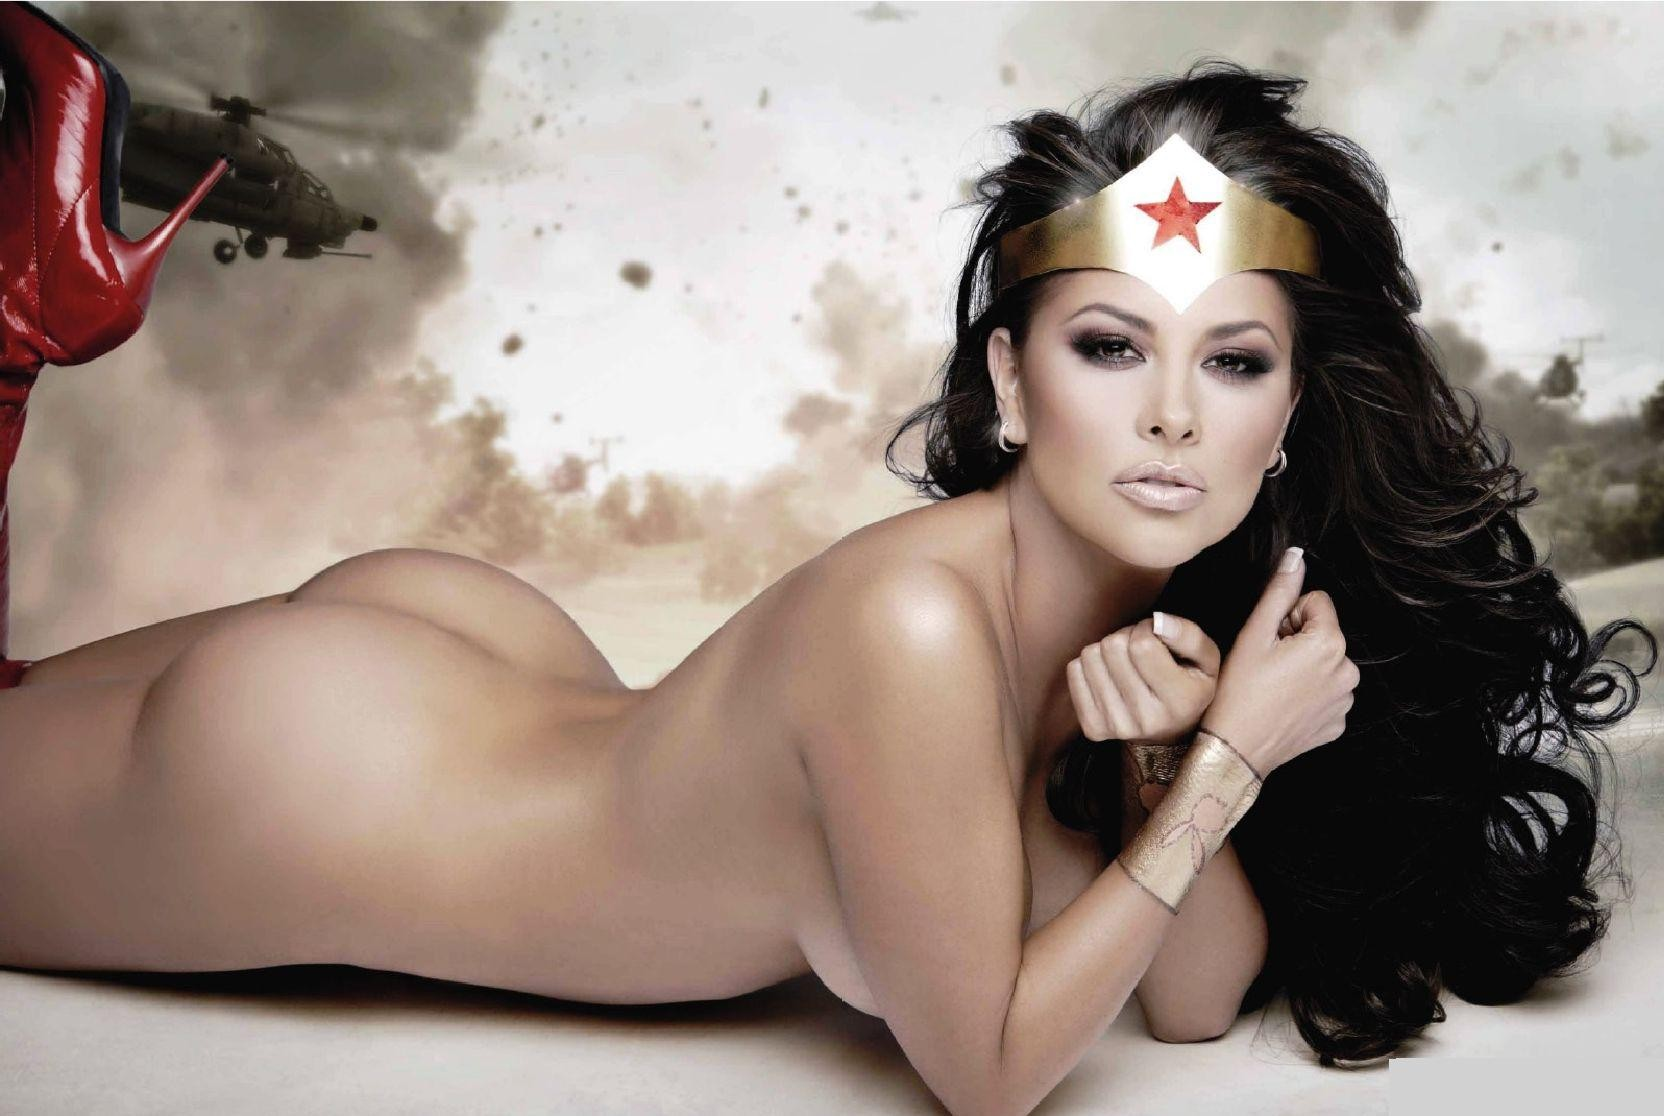 hot wonder woman pictures nude